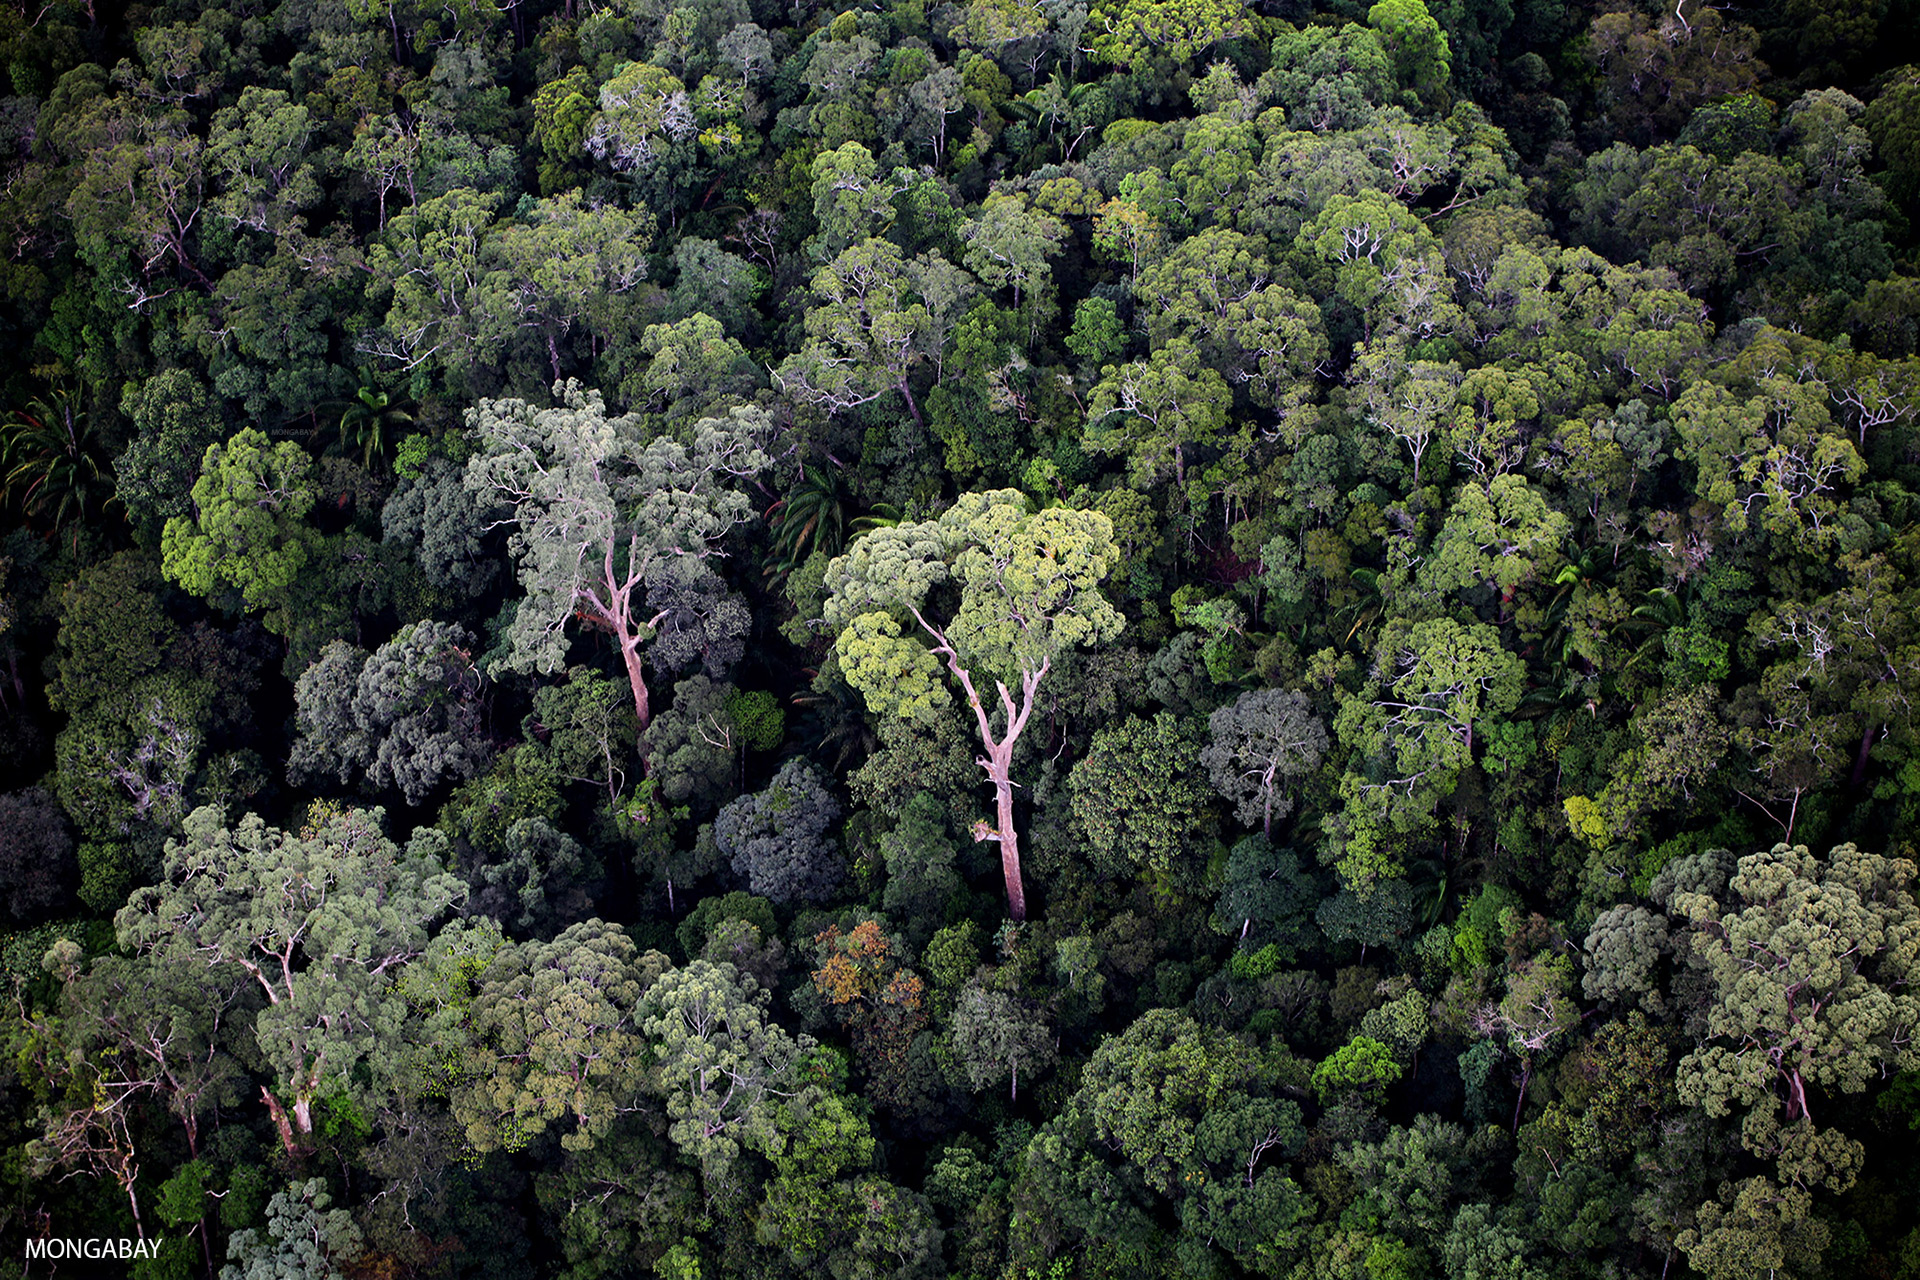 An overview of the rain forests